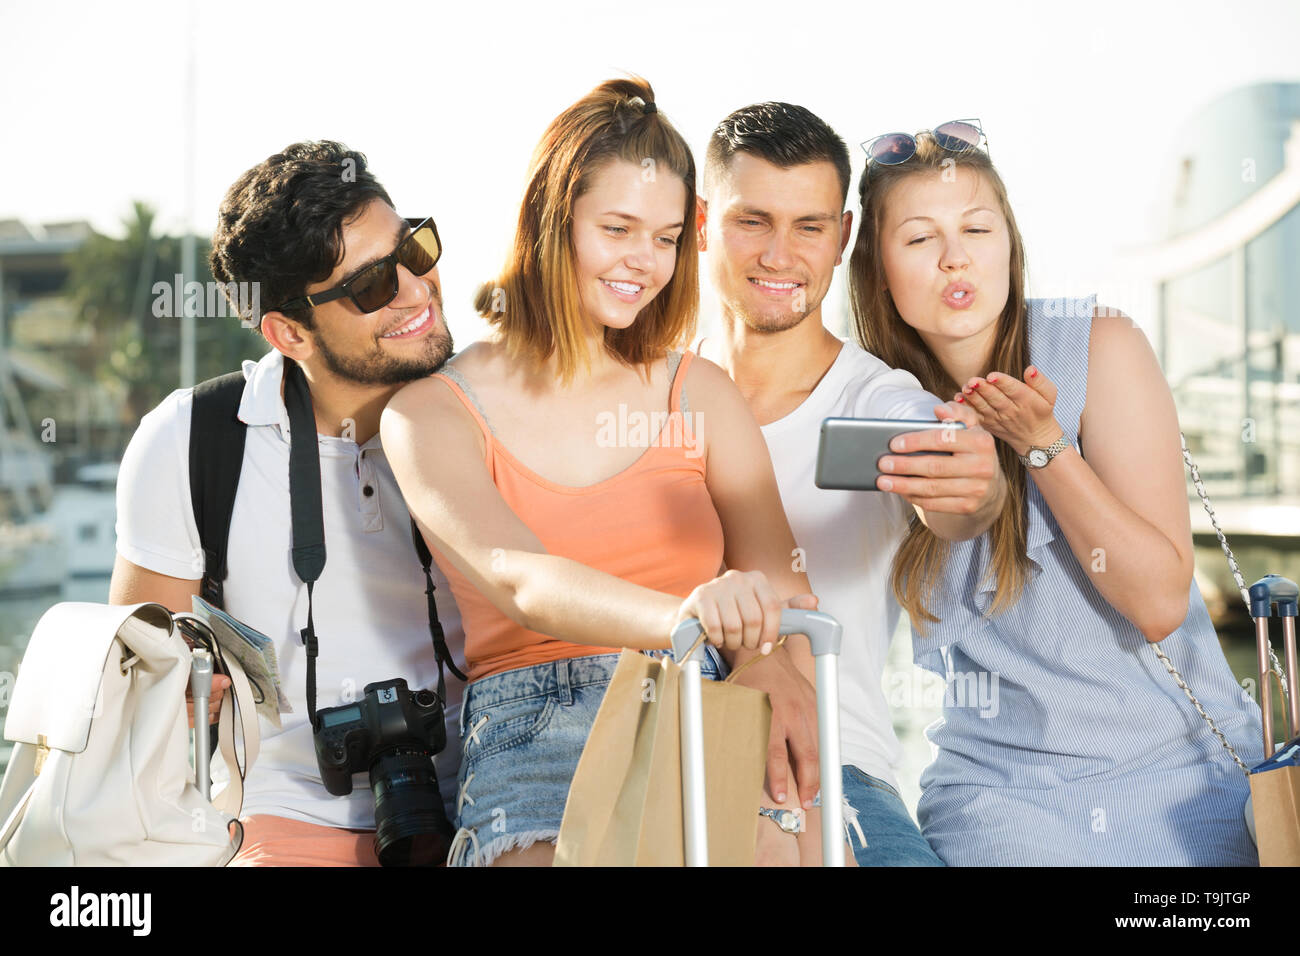 Group of friends taking selfie on camera in smartphone on waterfront in town on summer day - Stock Image